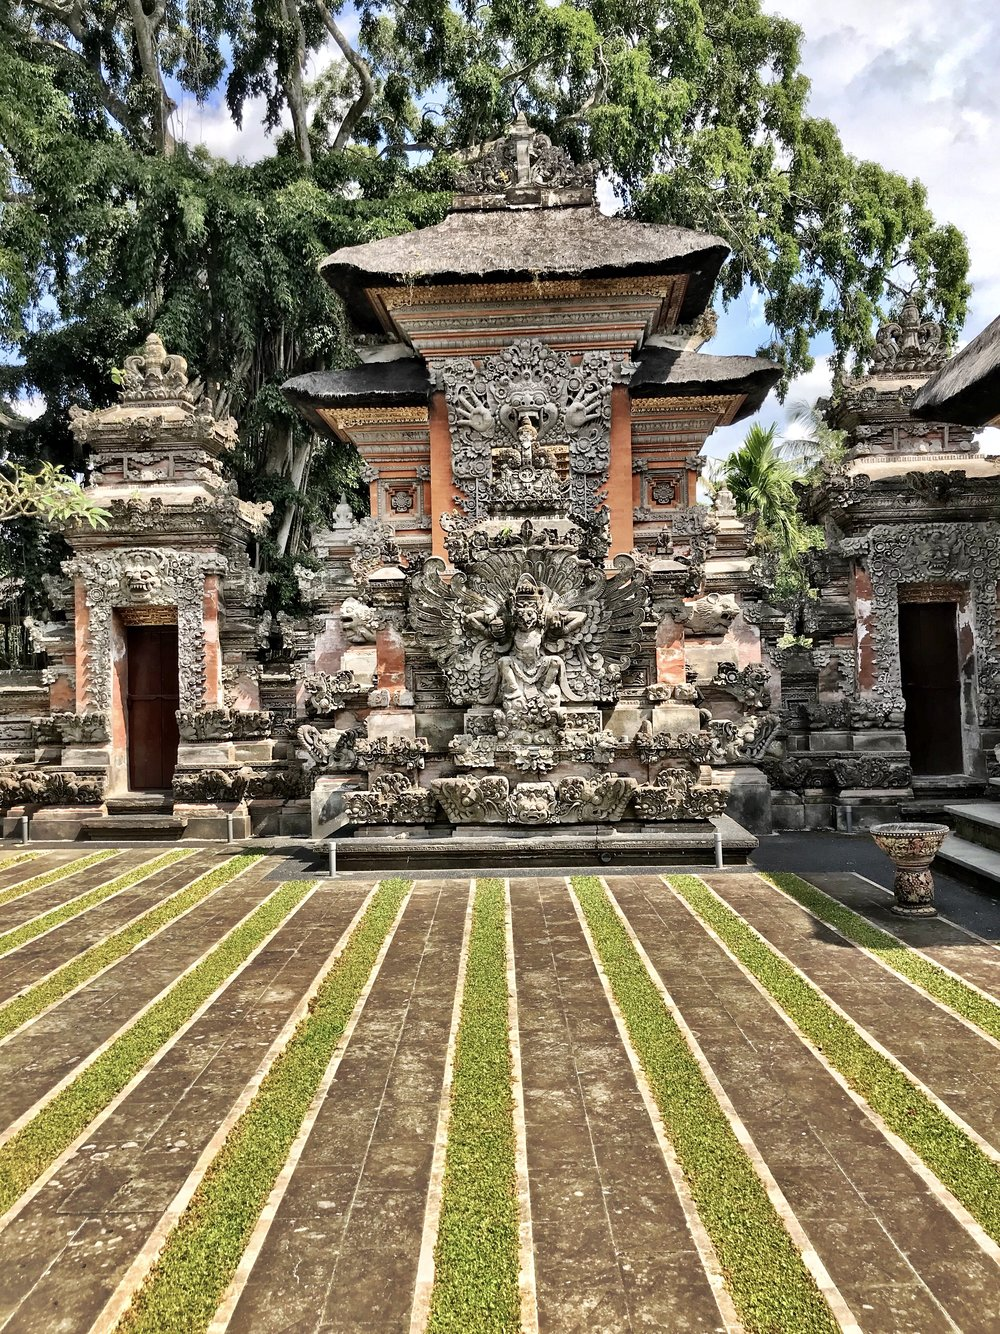 Like many temples in Bali, the interior courtyard features rows of grass and stone